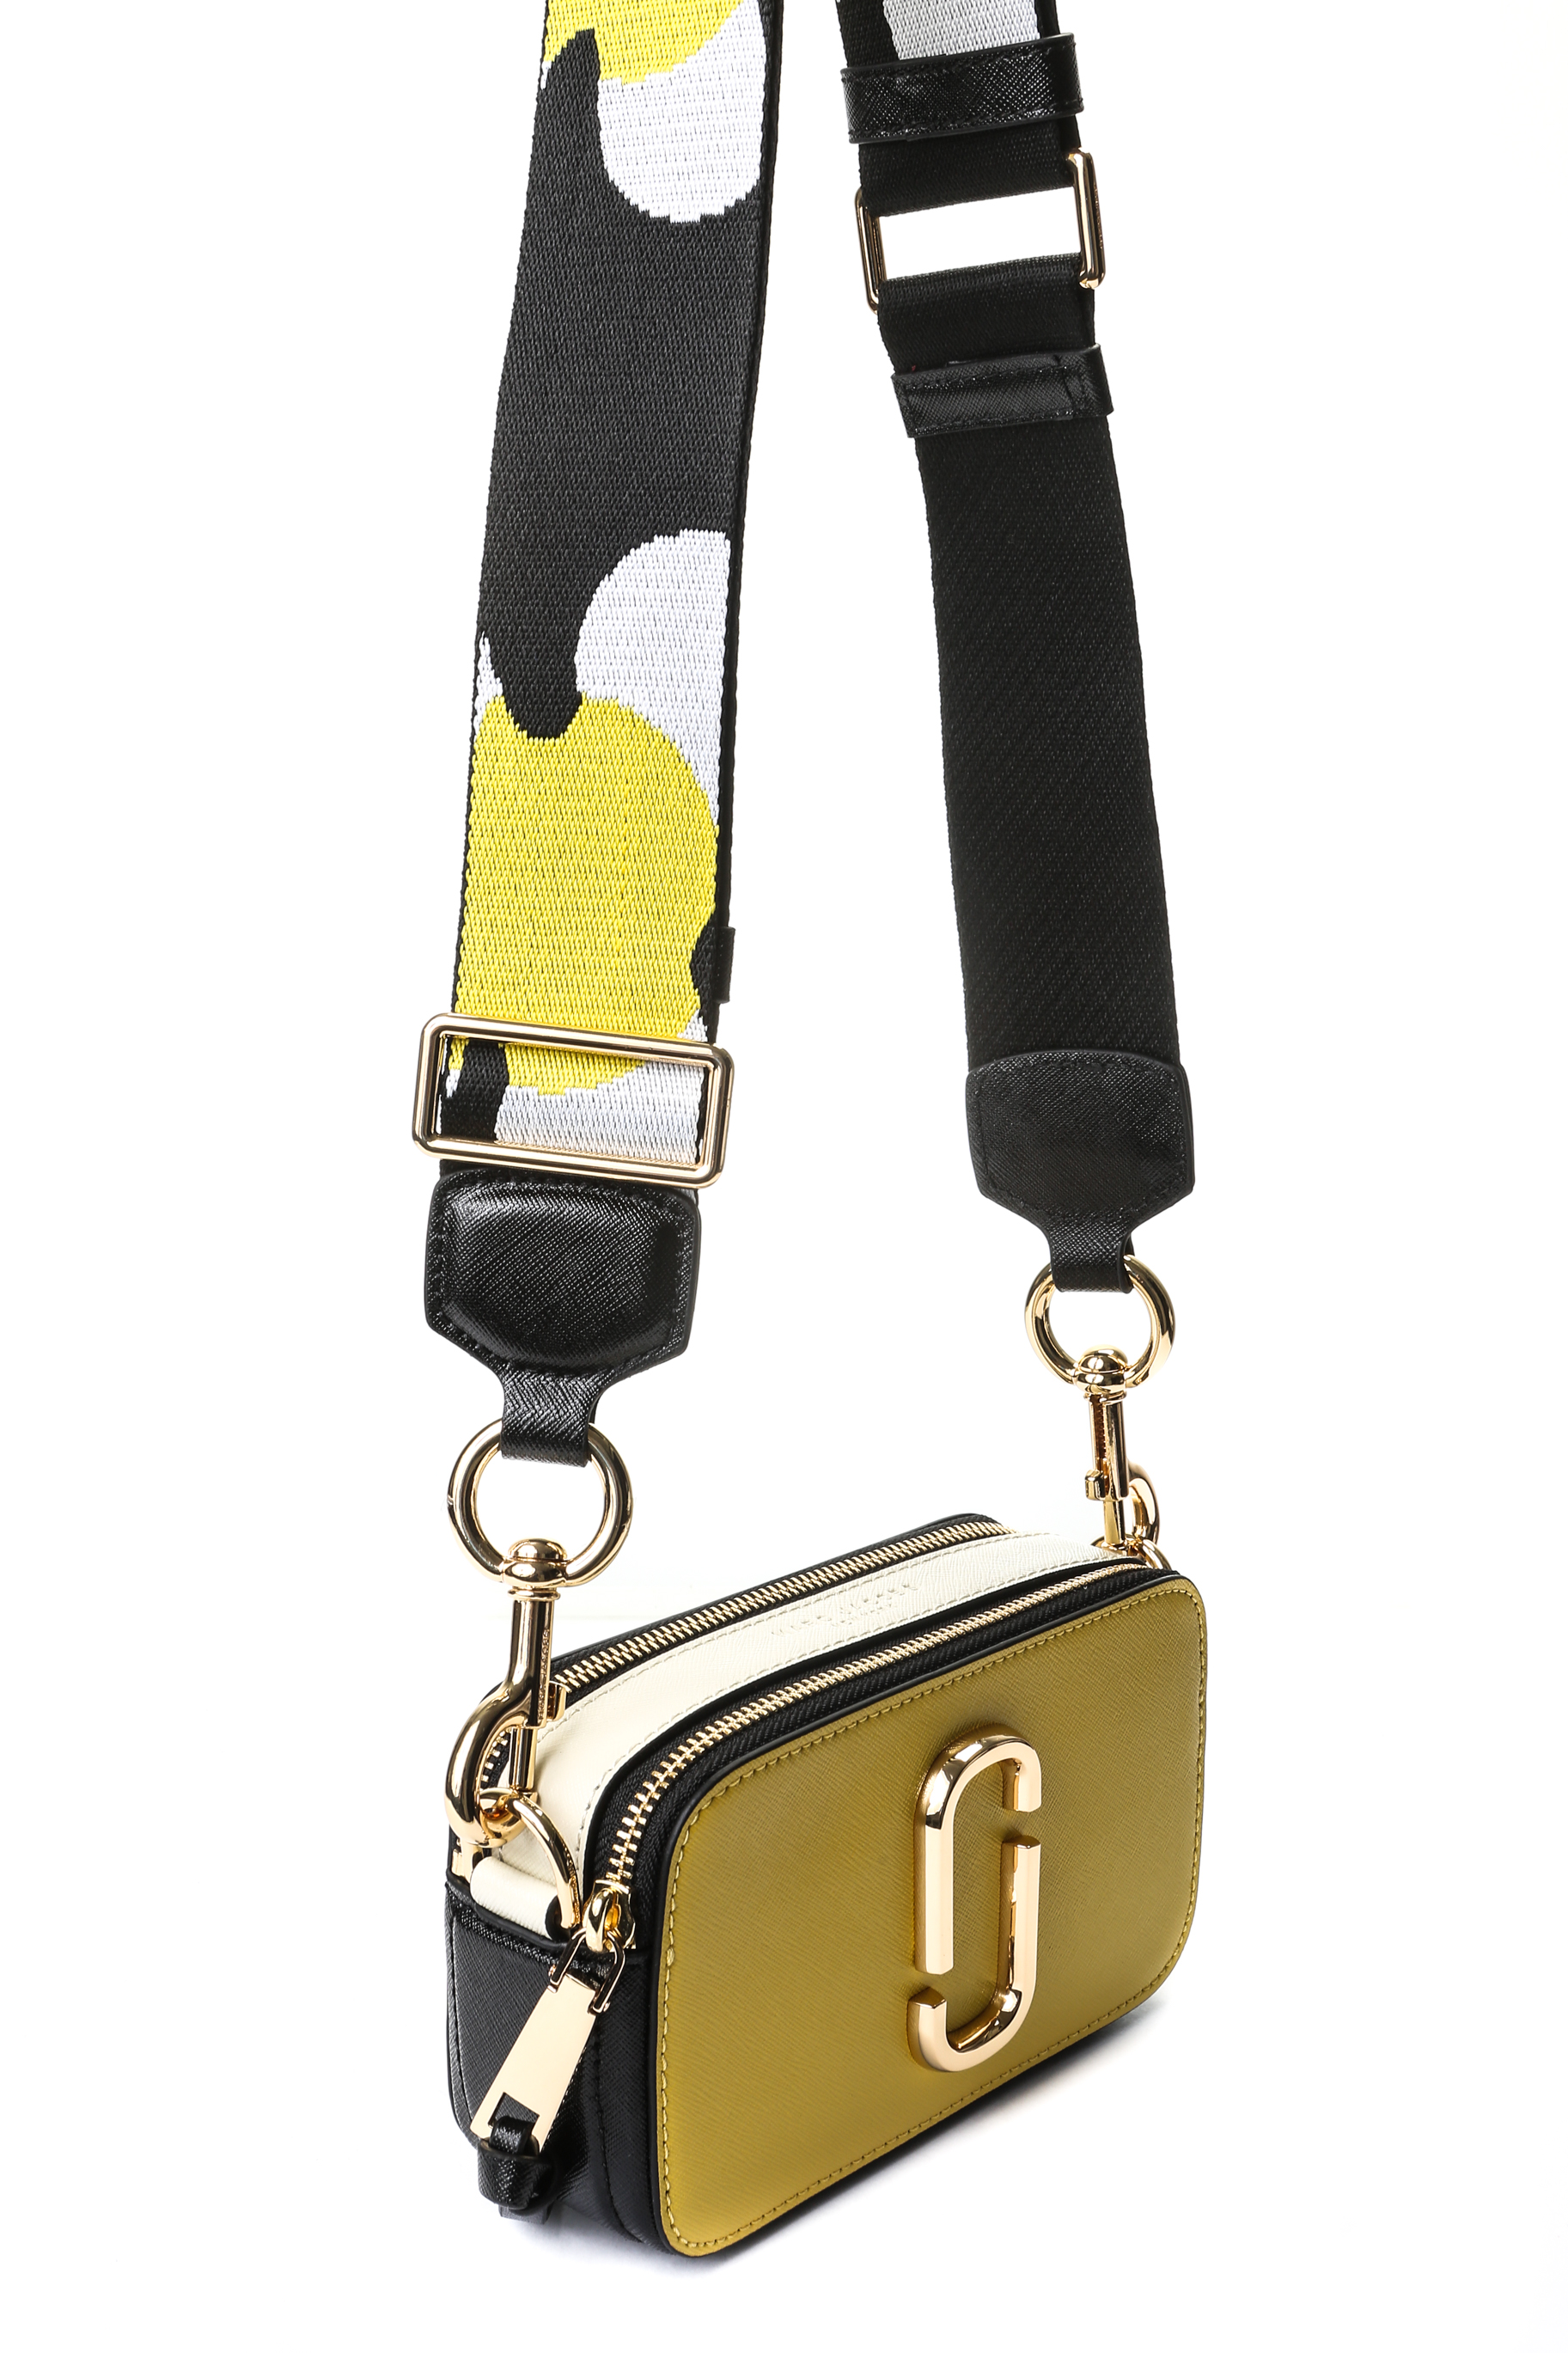 ceb16ebebfd2 Marc Jacobs Snapshot Camera Bag - Yellow / White / Black with Floral ...